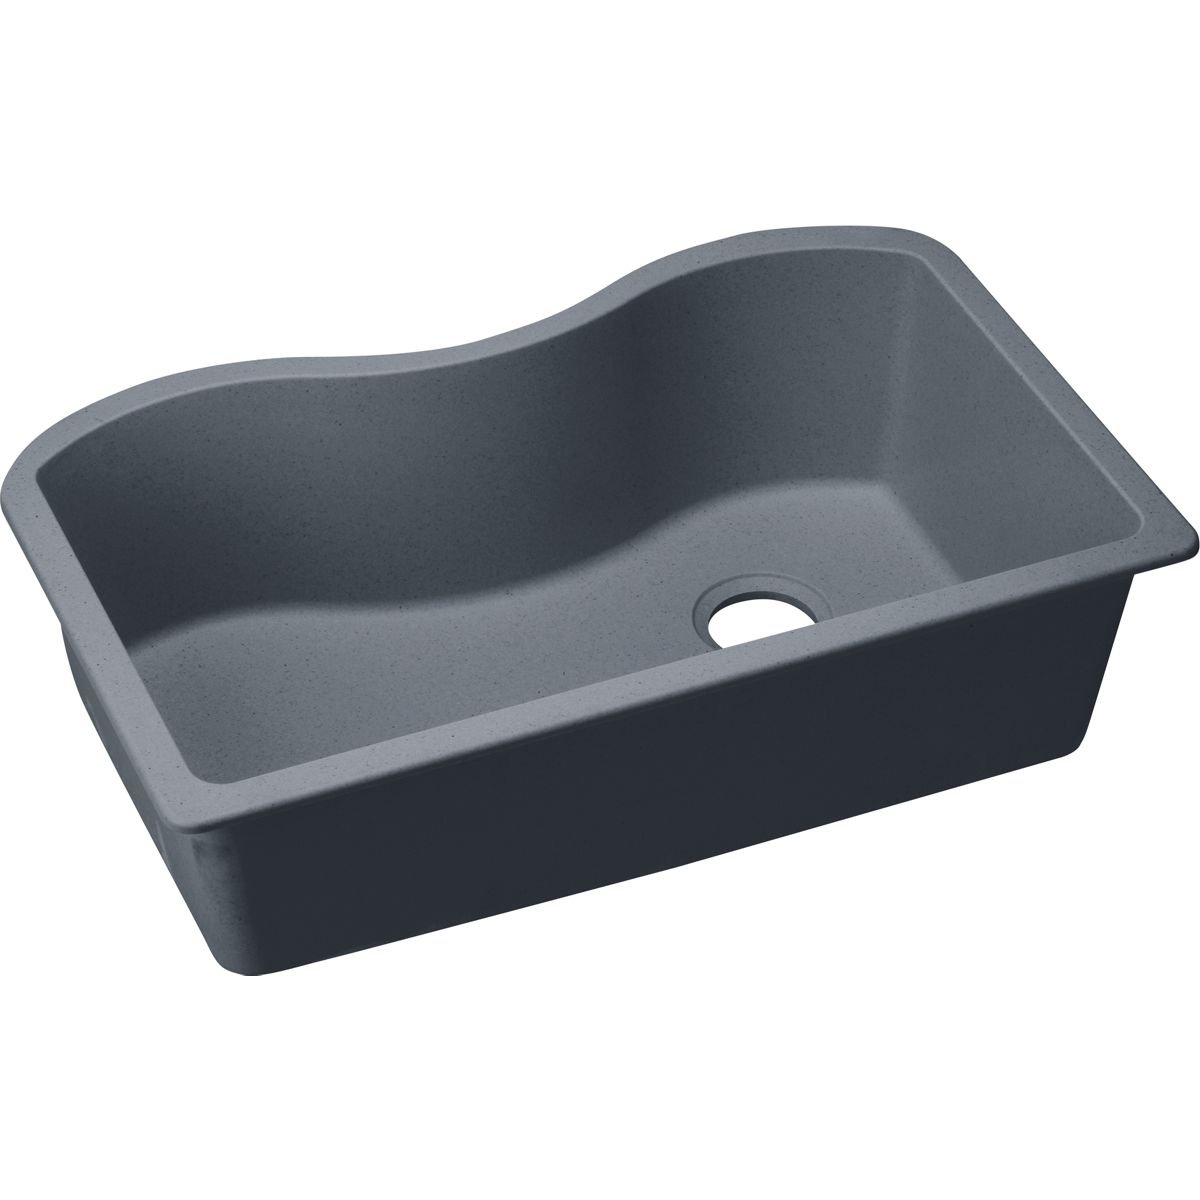 Elkay Quartz Classic Elgus3322rgy0 Dusk Gray Single Bowl Undermount Sink Amazon Com